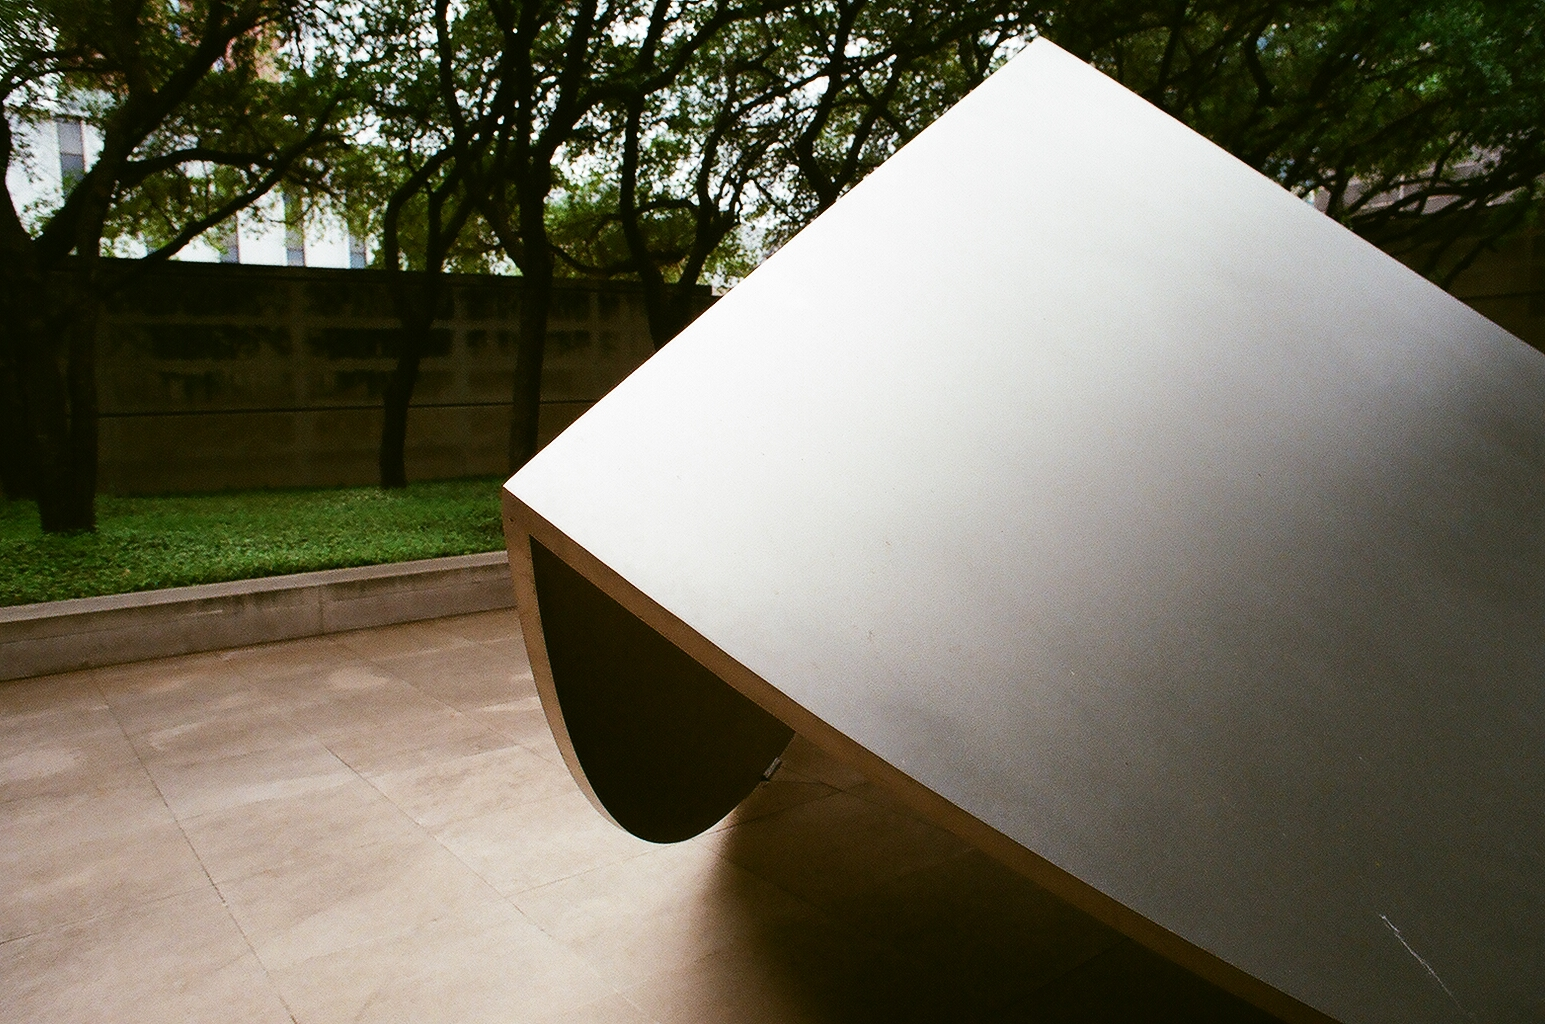 Untitled - by Ellsworth Kelly (1982-1983)  This piece is unquestionably my favorite in the garden!